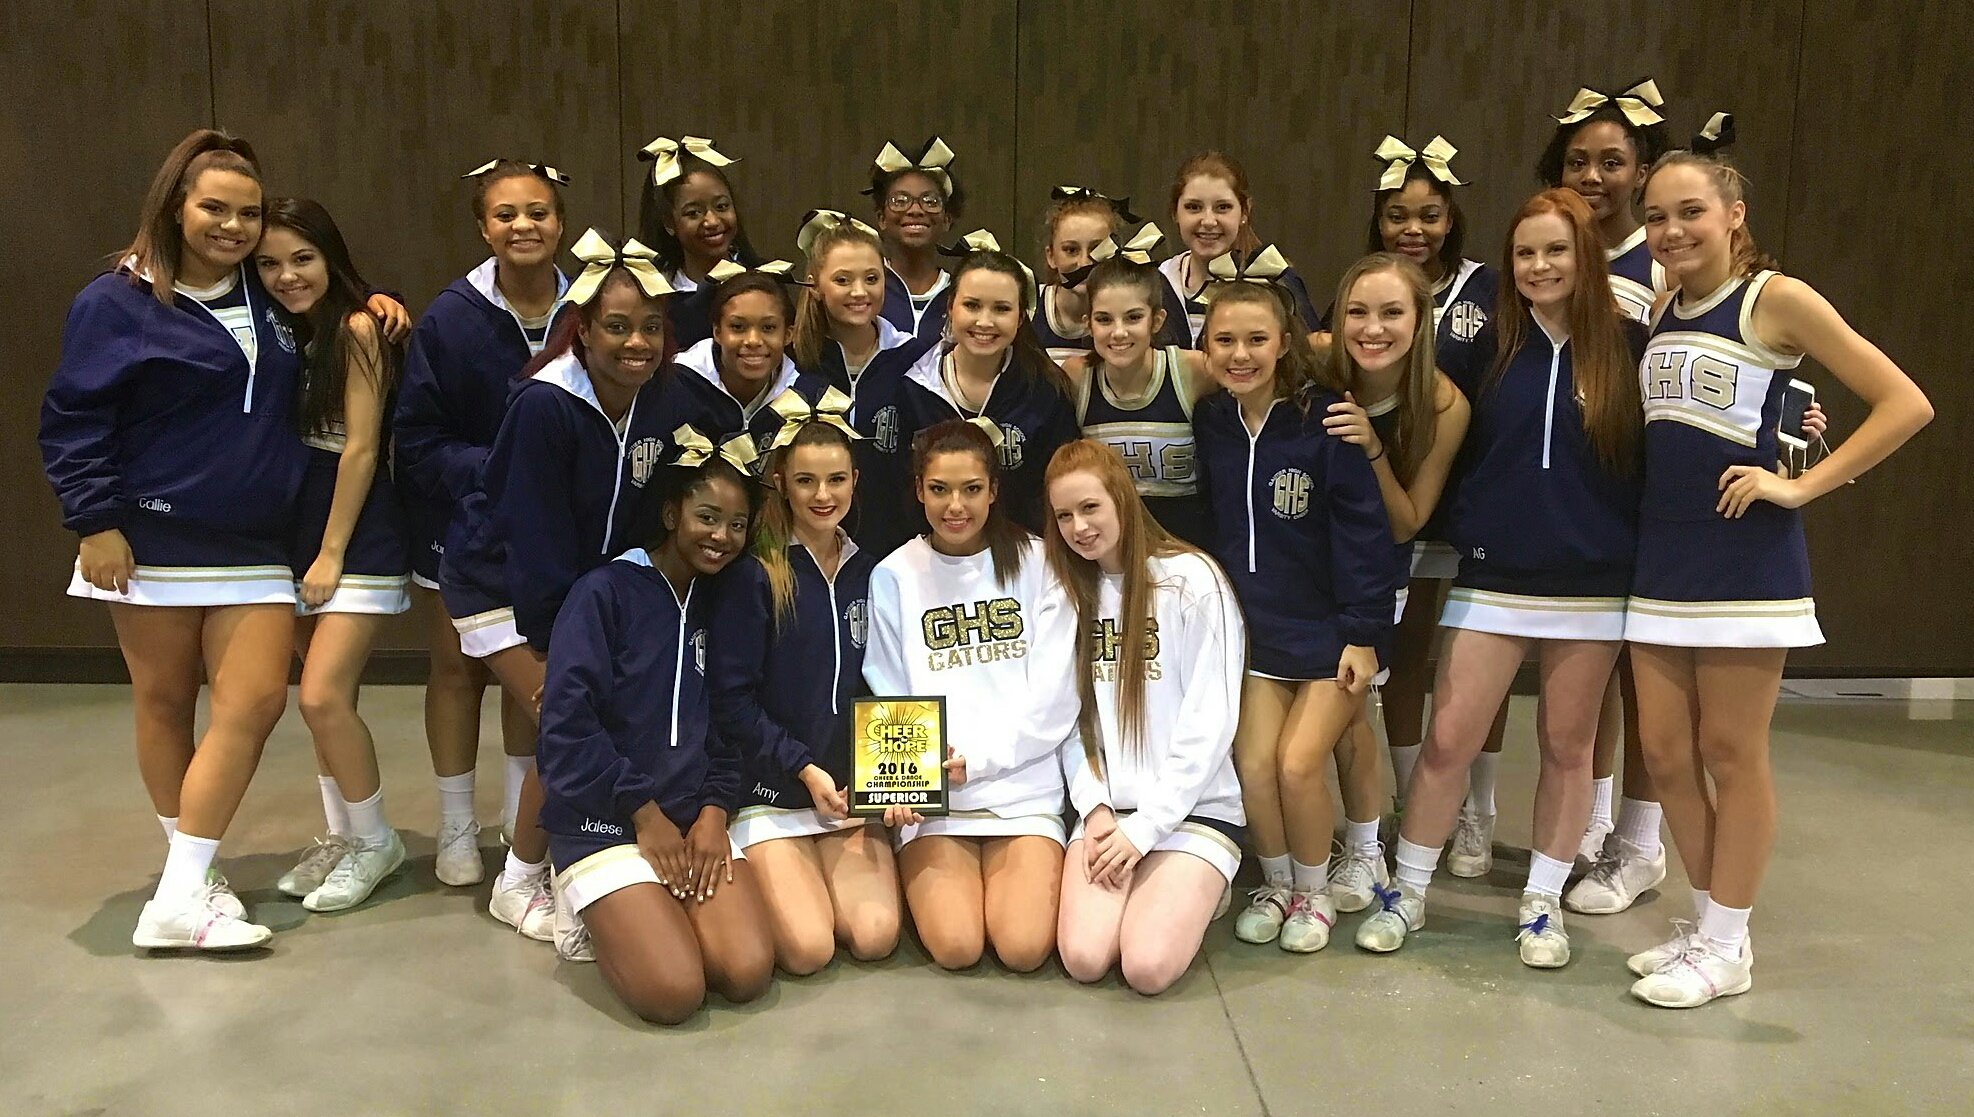 Gautier High School On Twitter In Cheer For Hope Today At Biloxi